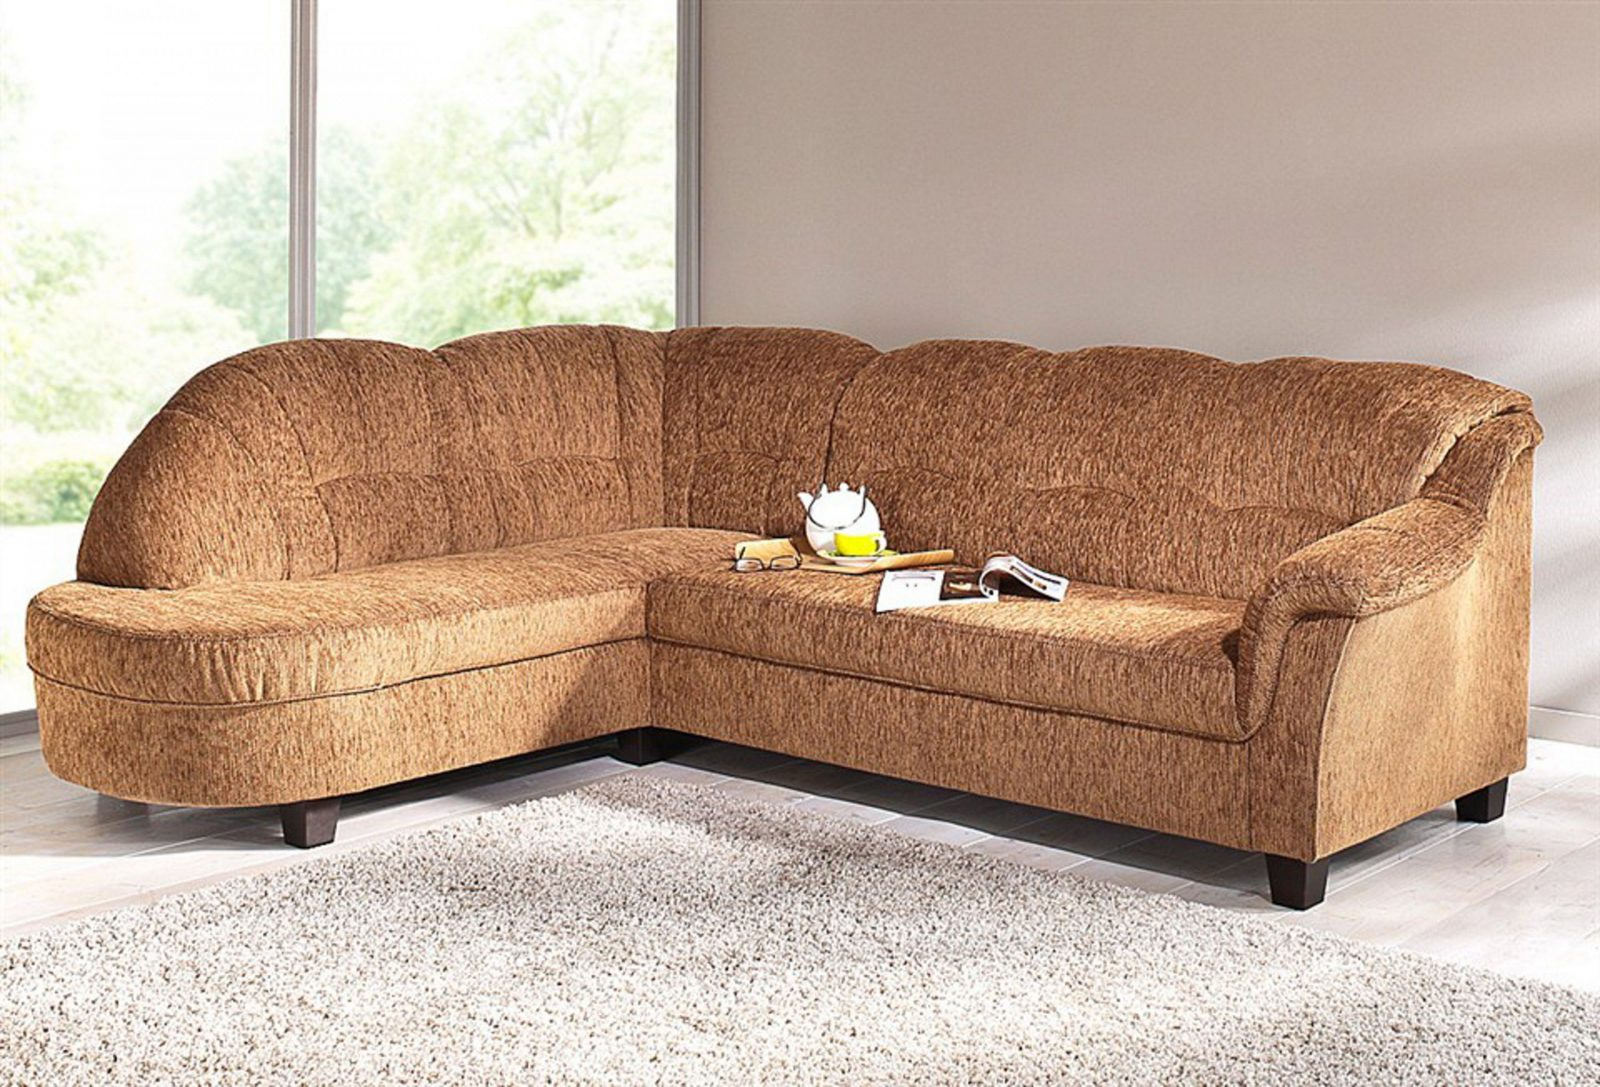 Sofa Hussen Stretch Good Hussen Ecksofa Fabulous Sofa Fr With Couch von Hussen Ecksofa Ottomane Links Photo